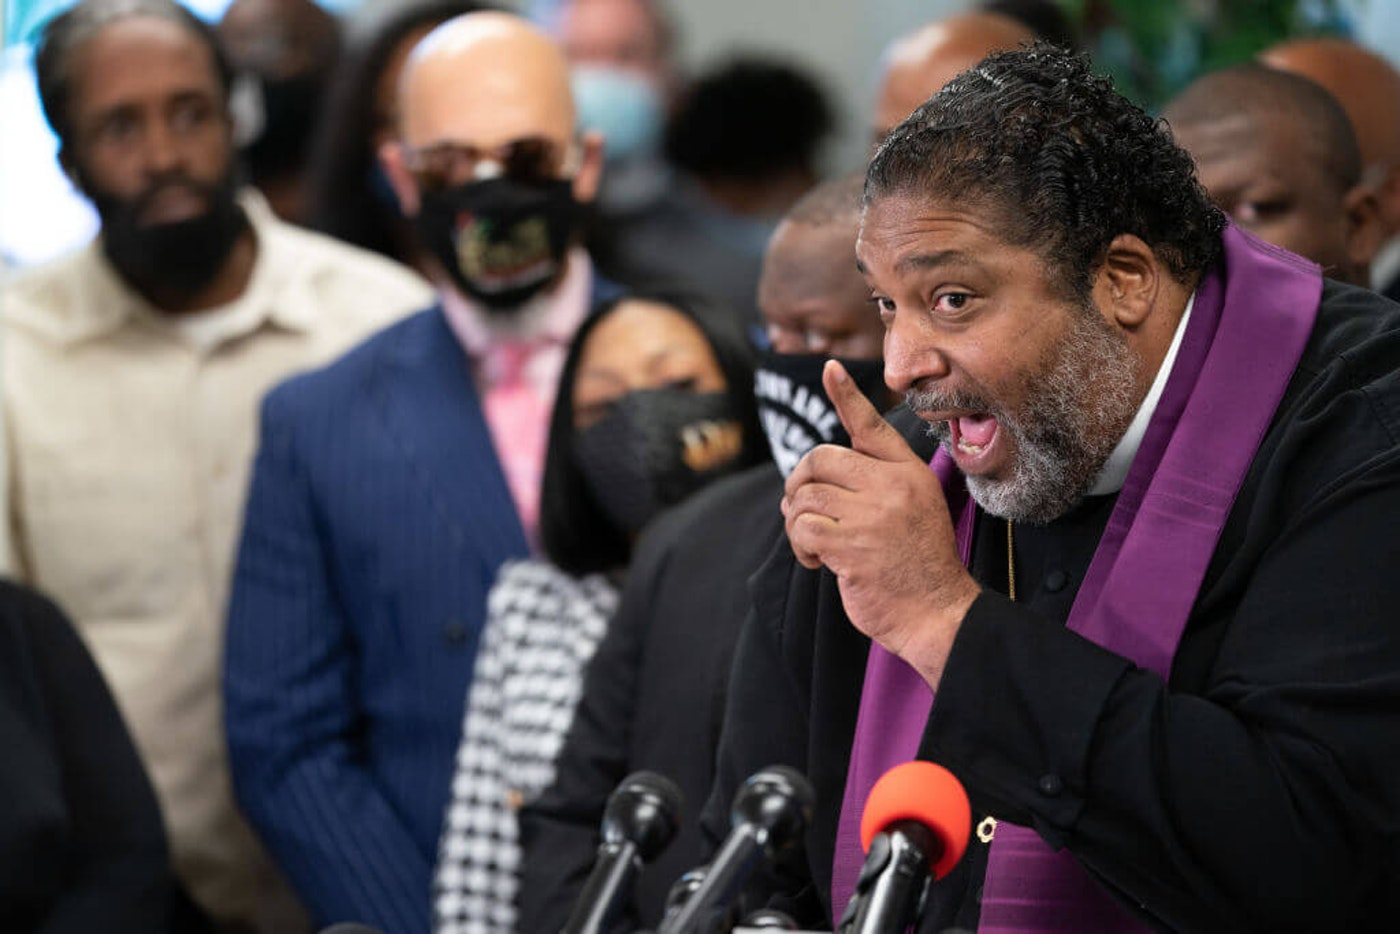 ELIZABETH CITY, NC - APRIL 24: William J. Barber II speaks during a press conference concerning the shooting death of Andrew Brown Jr. at Mount Lebanon A.M.E. Zion Church in Elizabeth City, North Carolina on April 24, 2021. Brown was shot by officers from the Pasquotank County Sheriffs Office on April 21. (Photo by Sean Rayford/Getty Images)